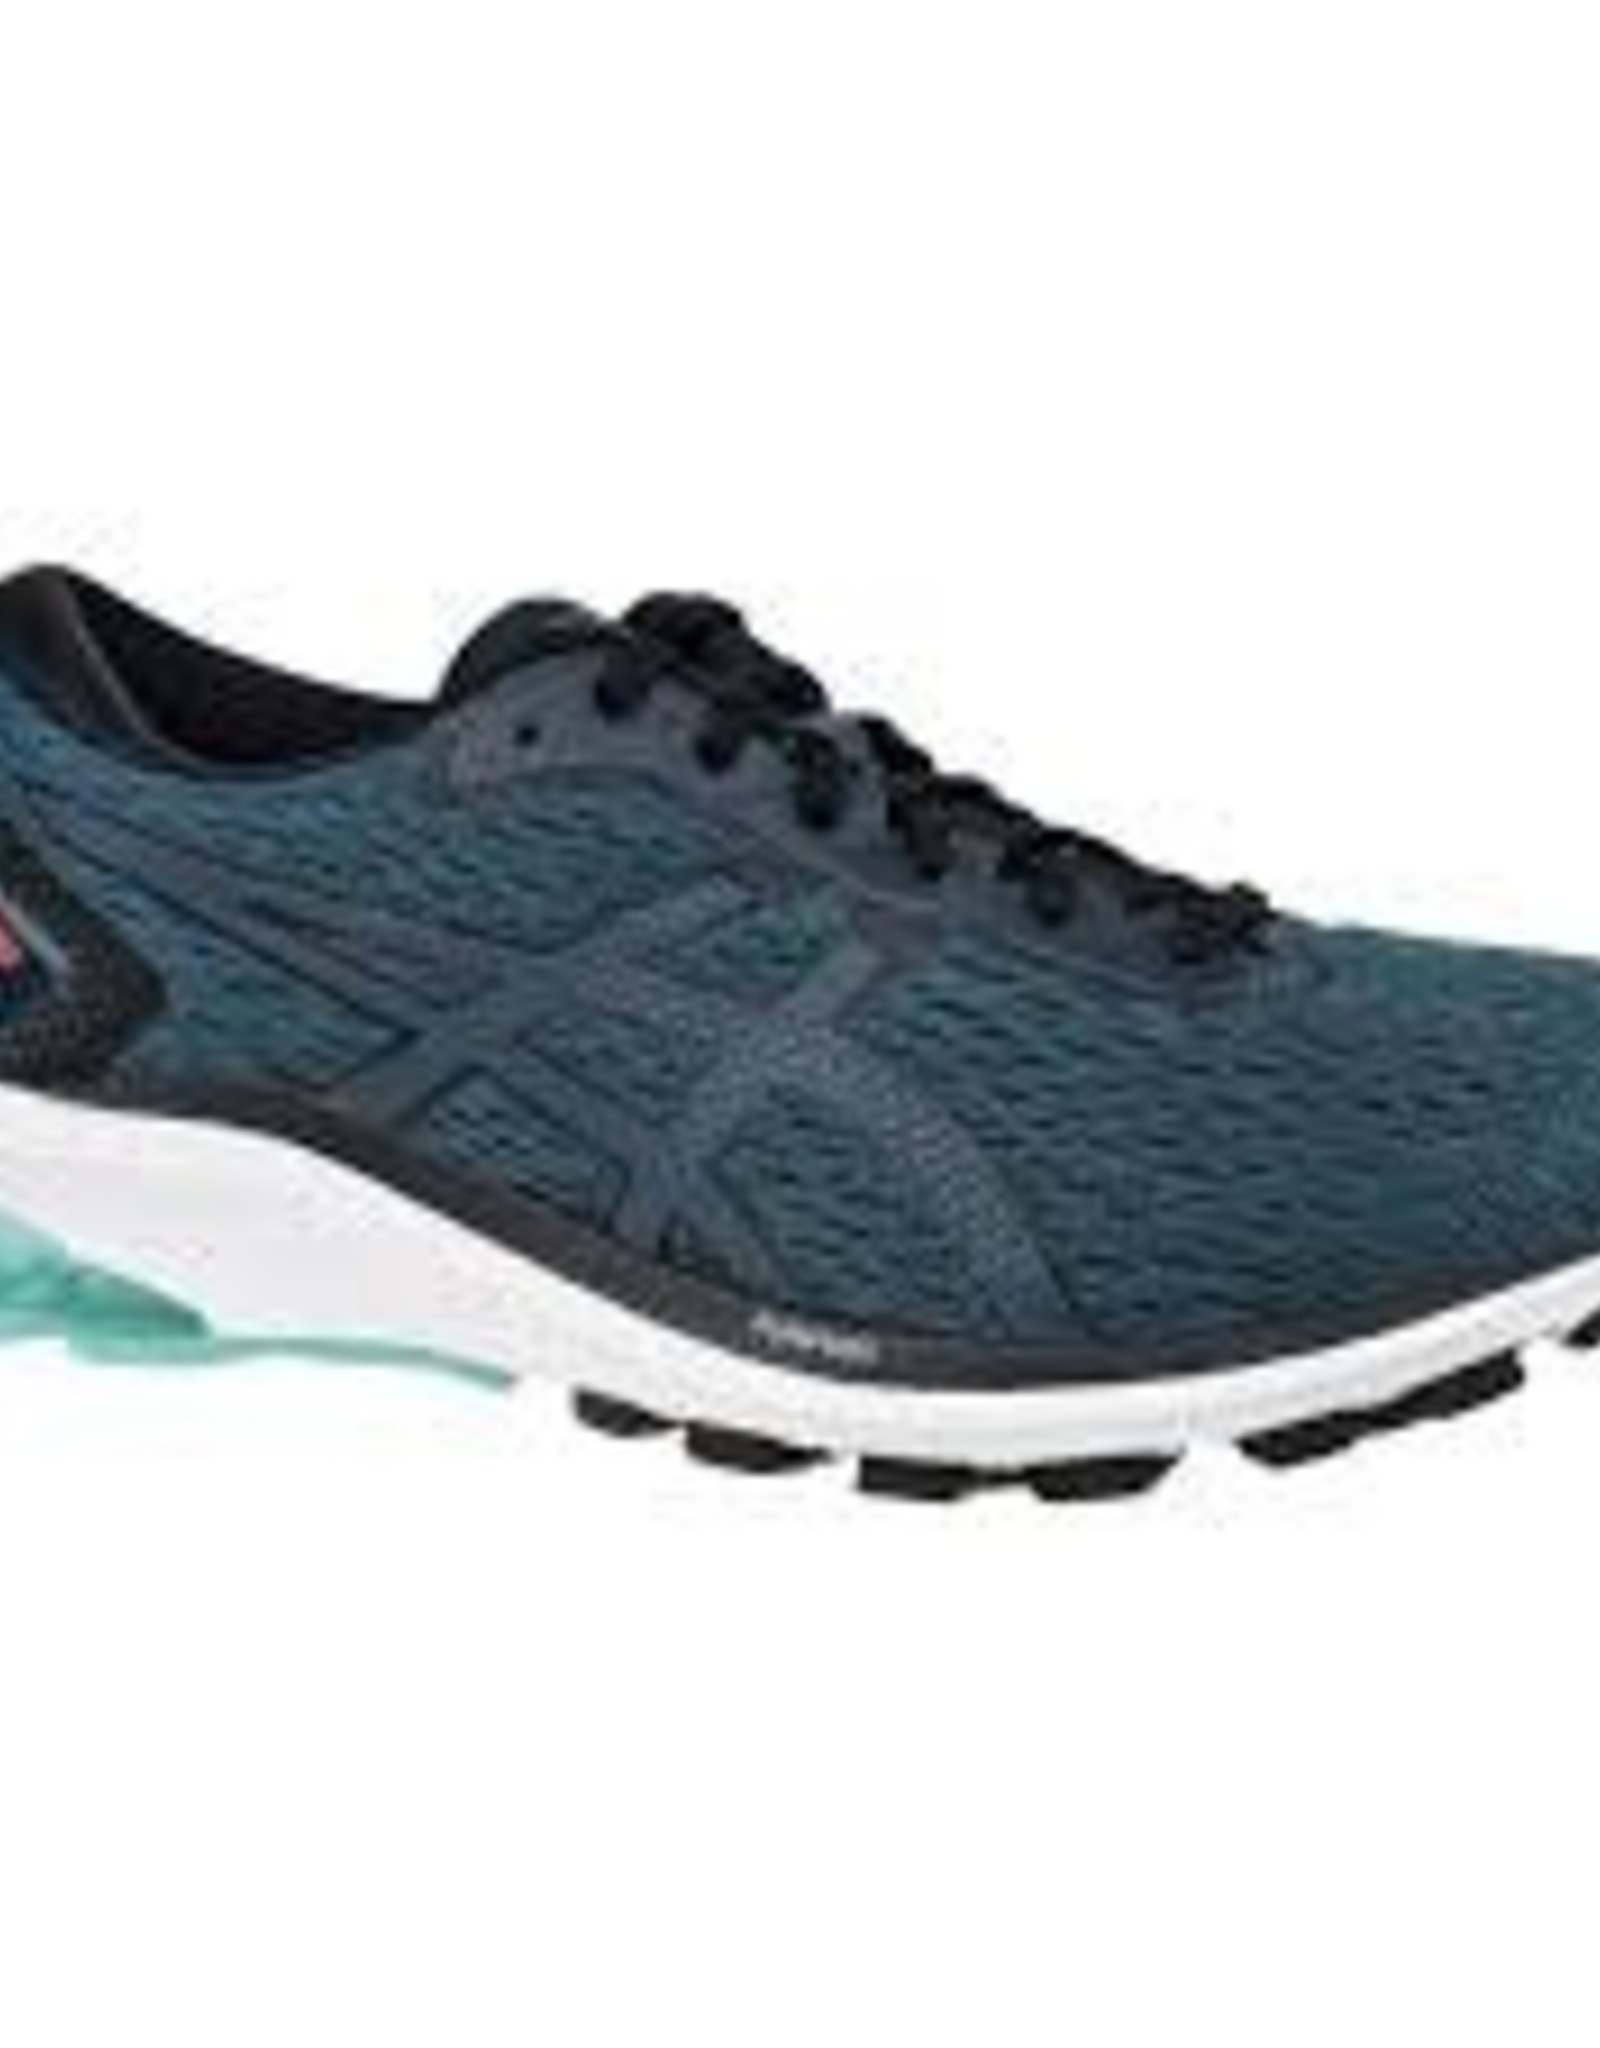 Asics Gt1000 9 magnetic blue/black